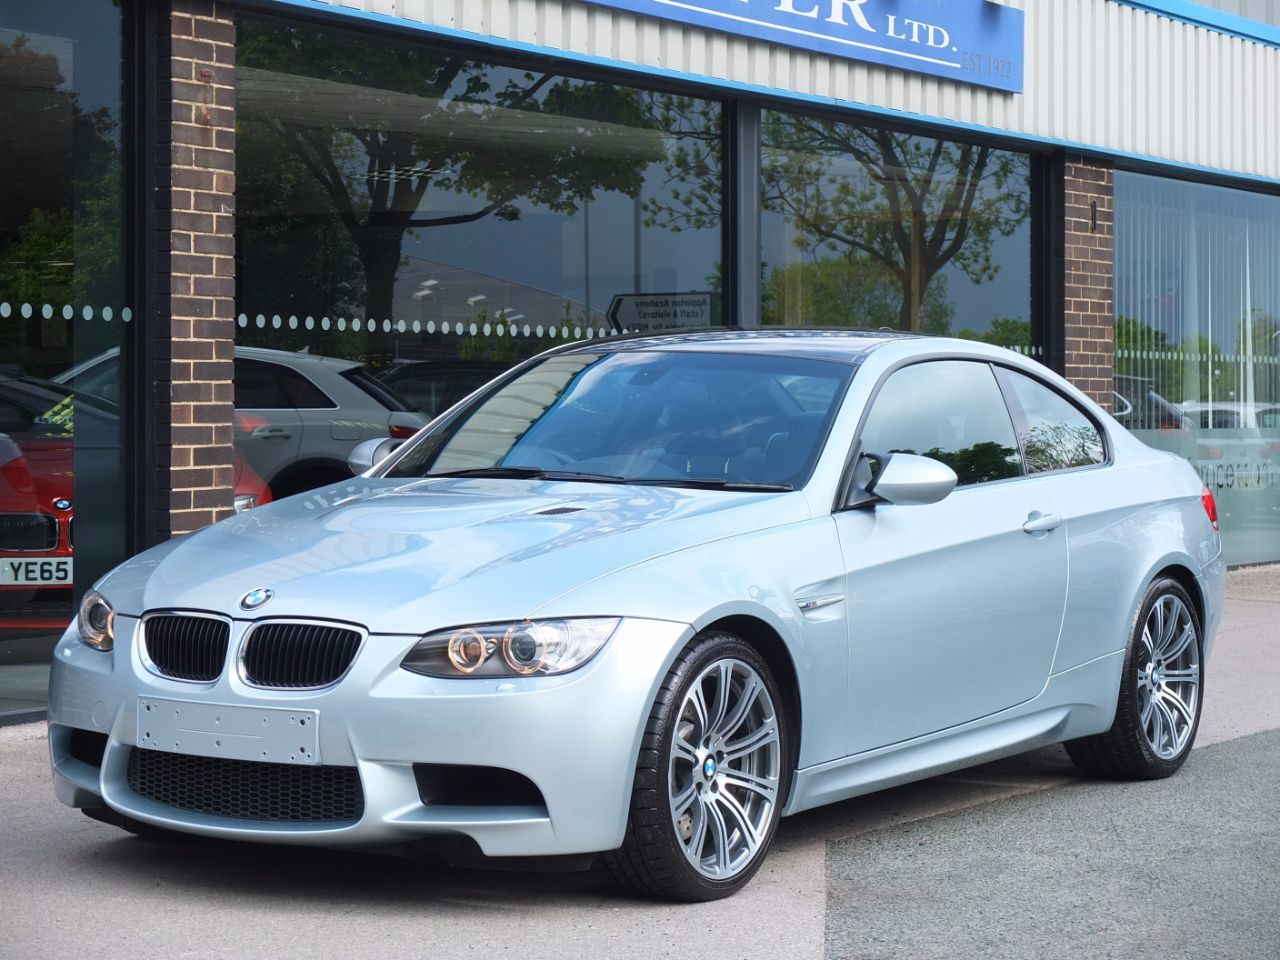 BMW M3 M3 4.0 V8 Coupe DCT Coupe Petrol Silverstone Ii Metallic